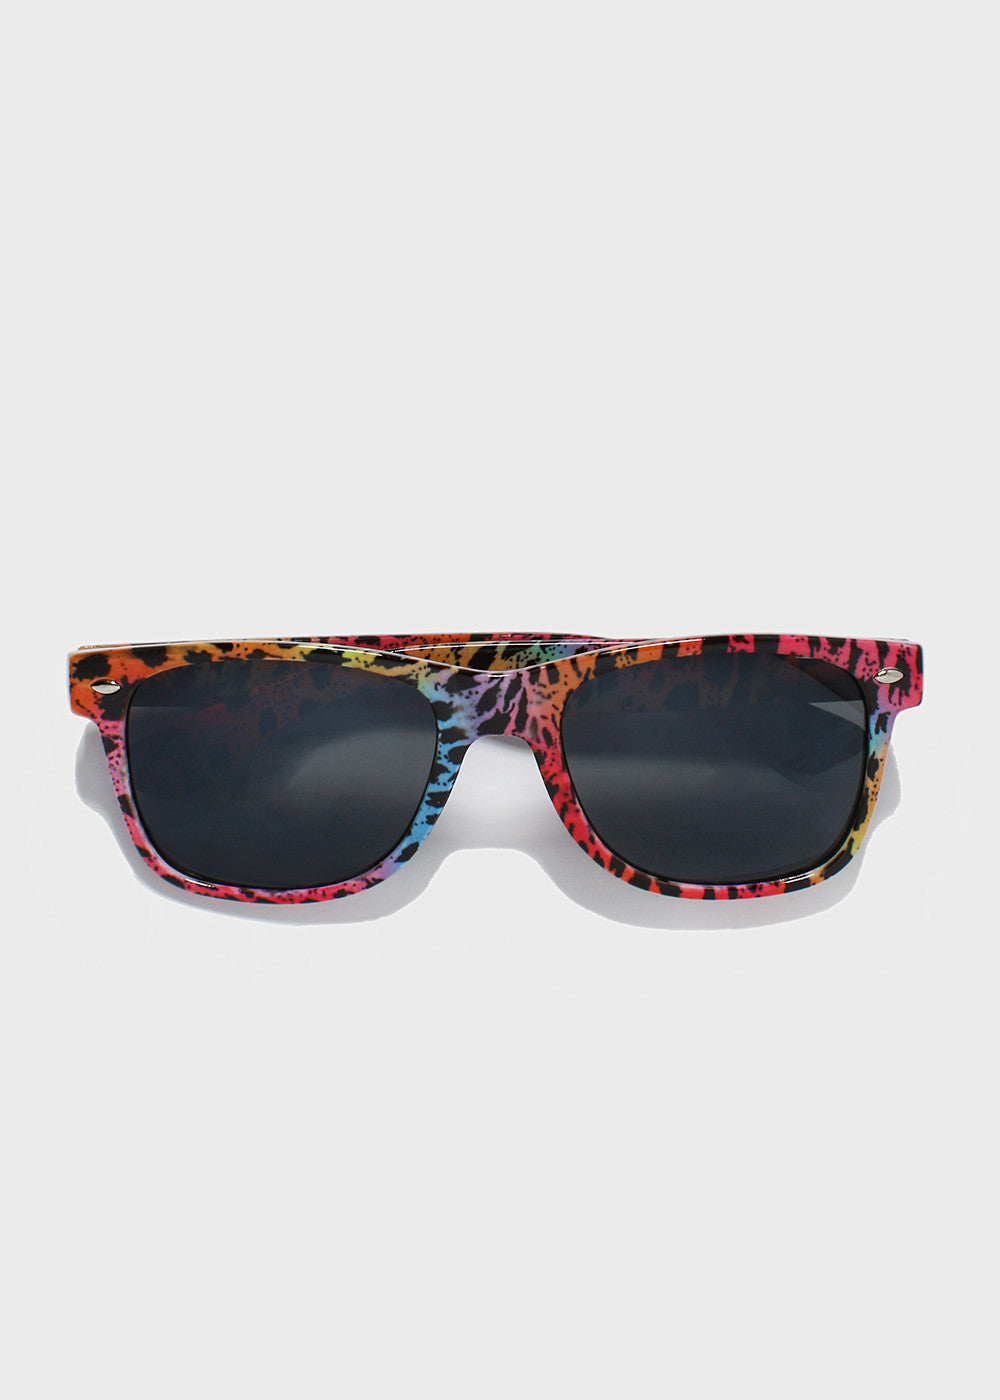 Multi-Color Animal Print Sunglasses- Multi